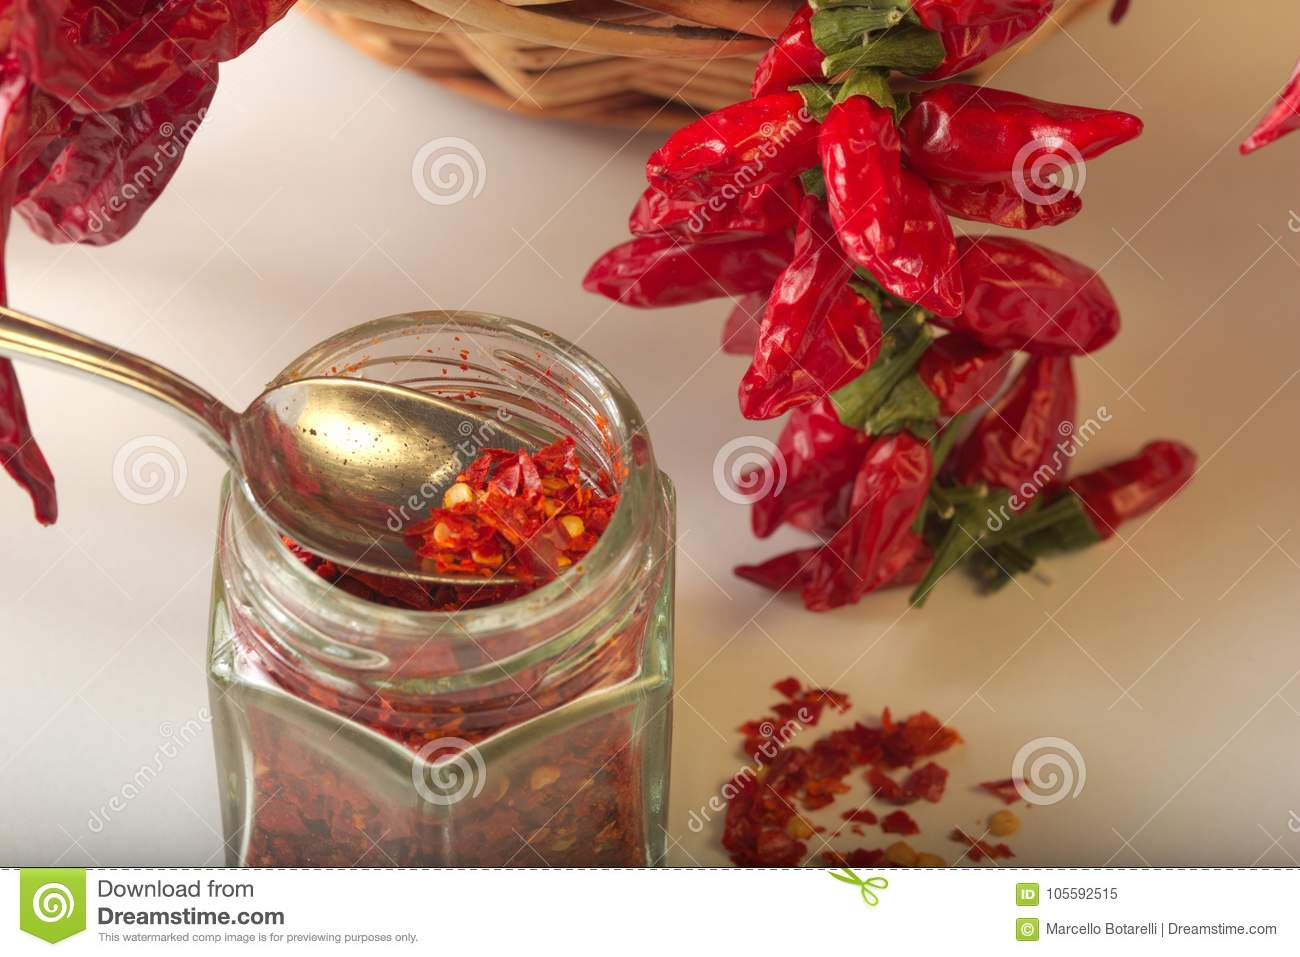 Spicy red pepper ground in the glass jar, with healthy dried peppers in the basket